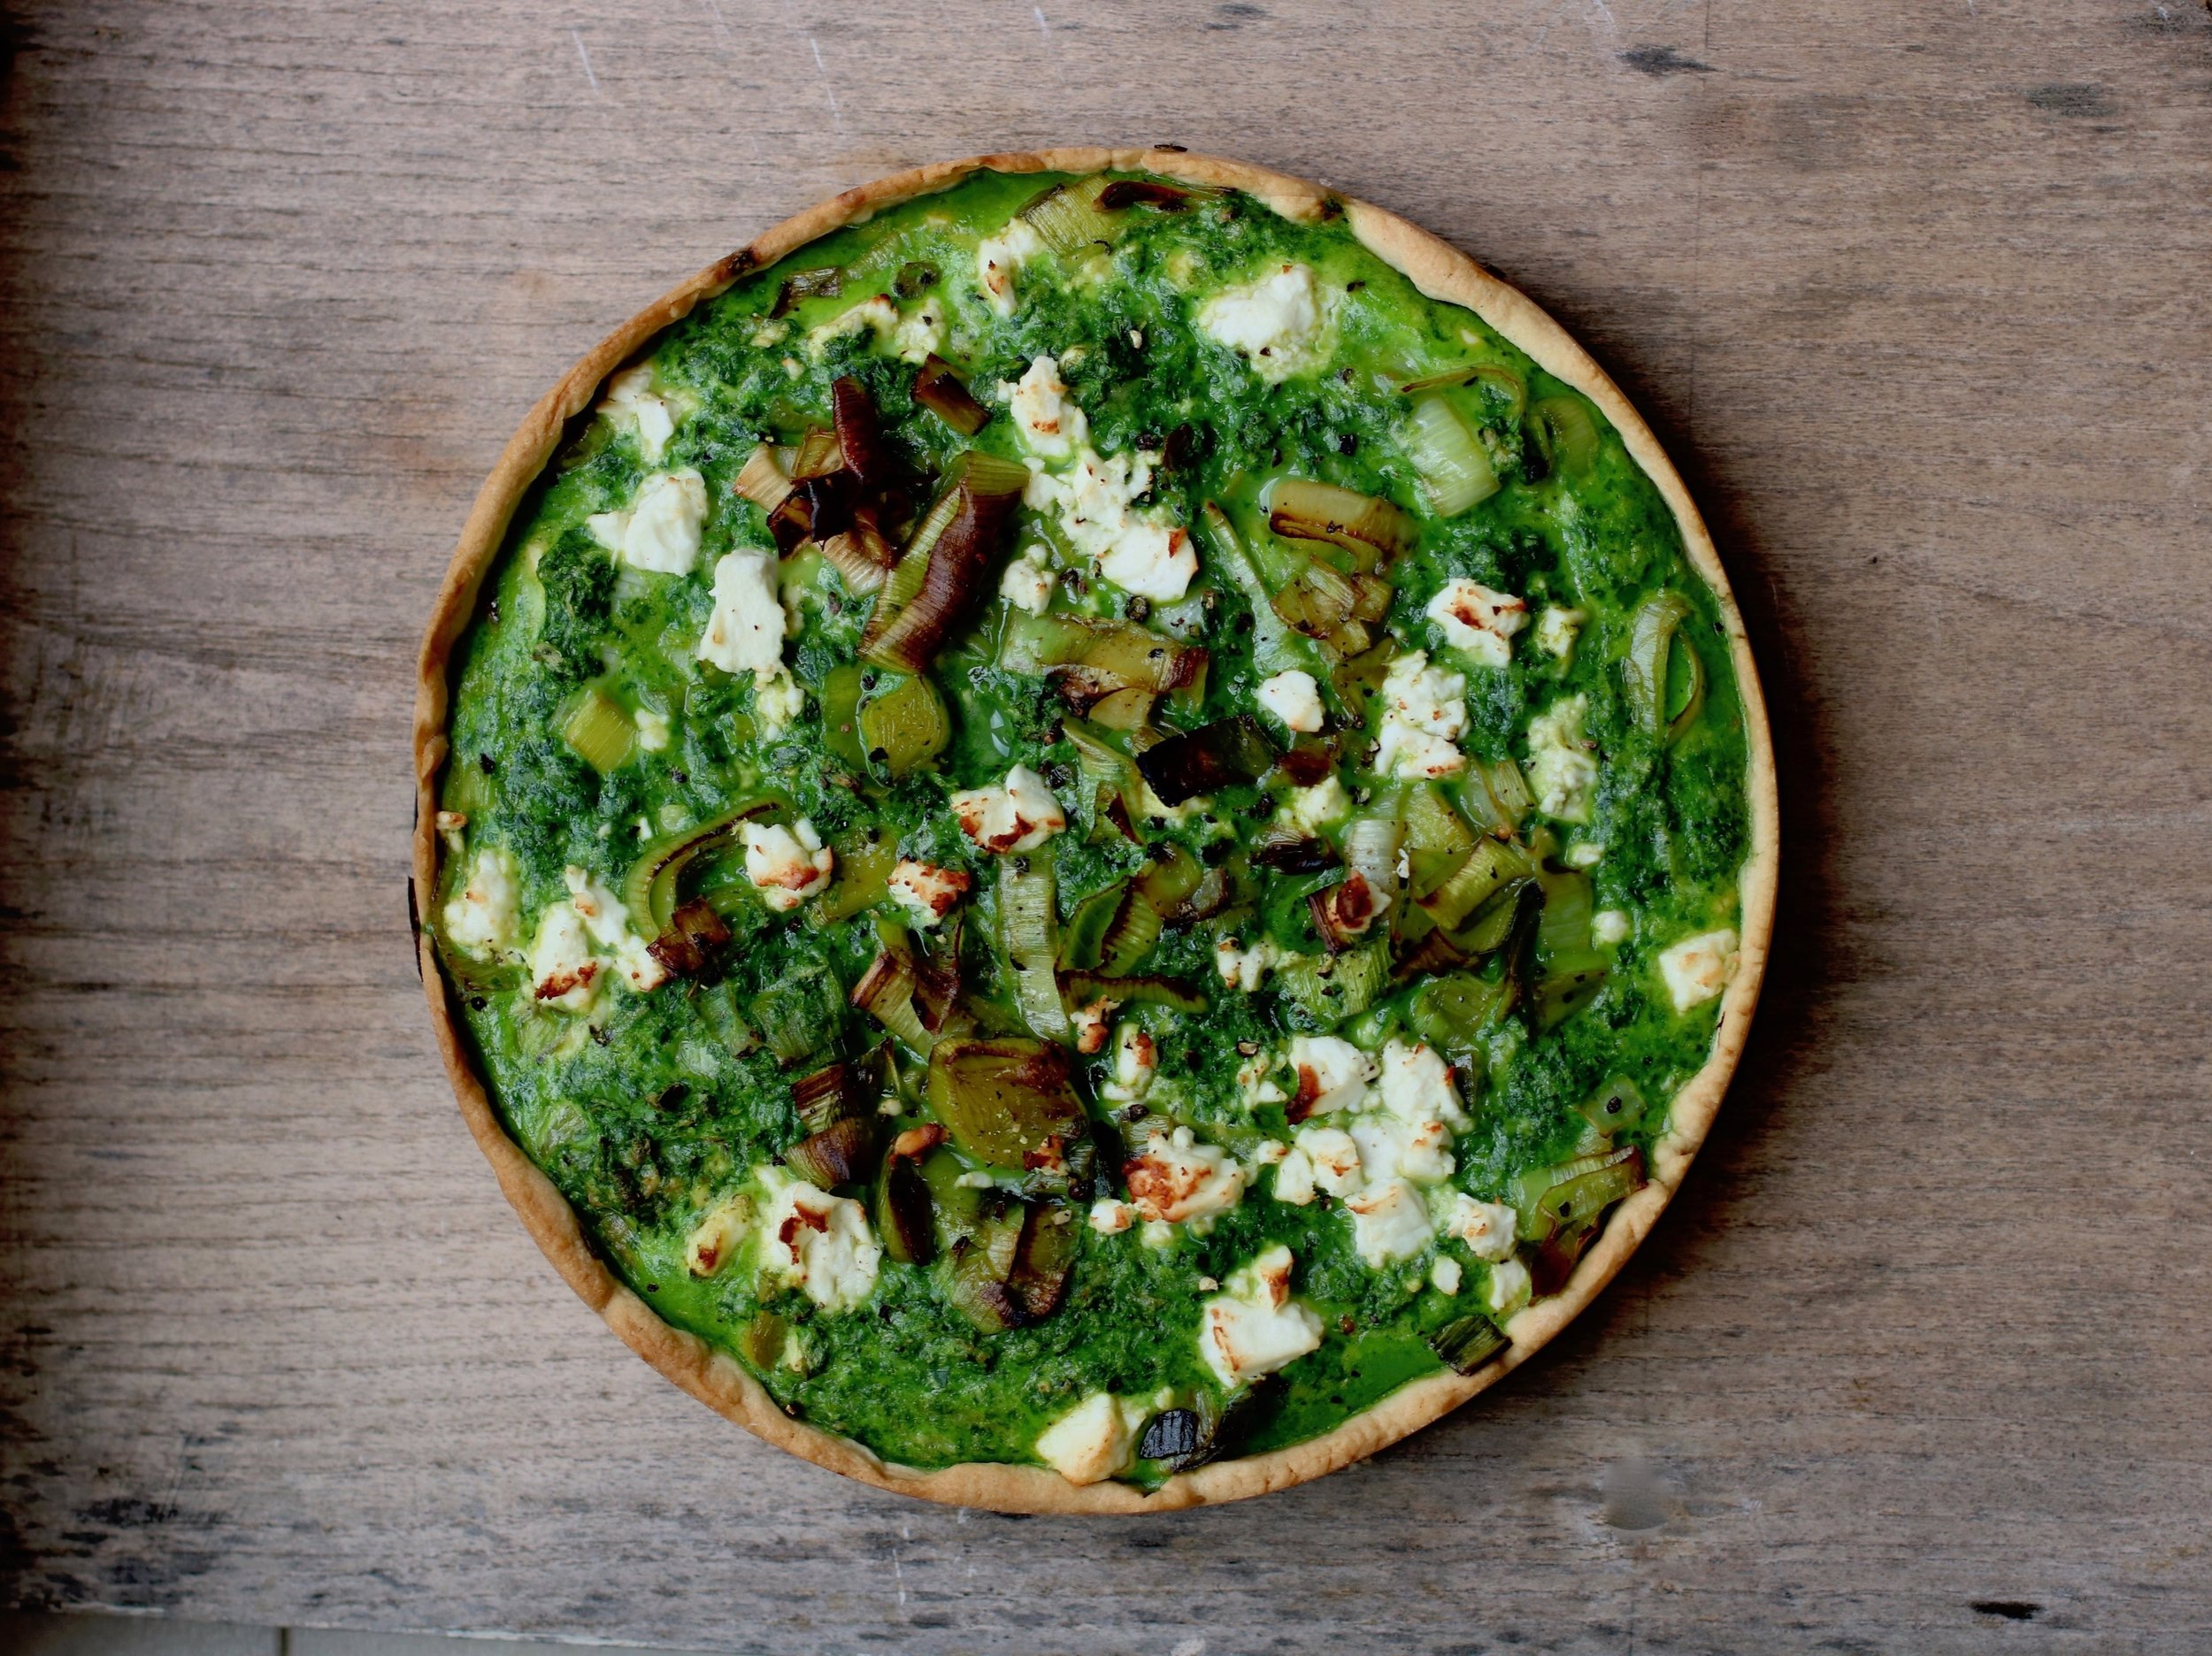 VERY GREEN TART   March-July.  This super quick recipe combines crispy leeks, vibrant spinach and crumbly feta make up this wonderfully healthy spring tart.